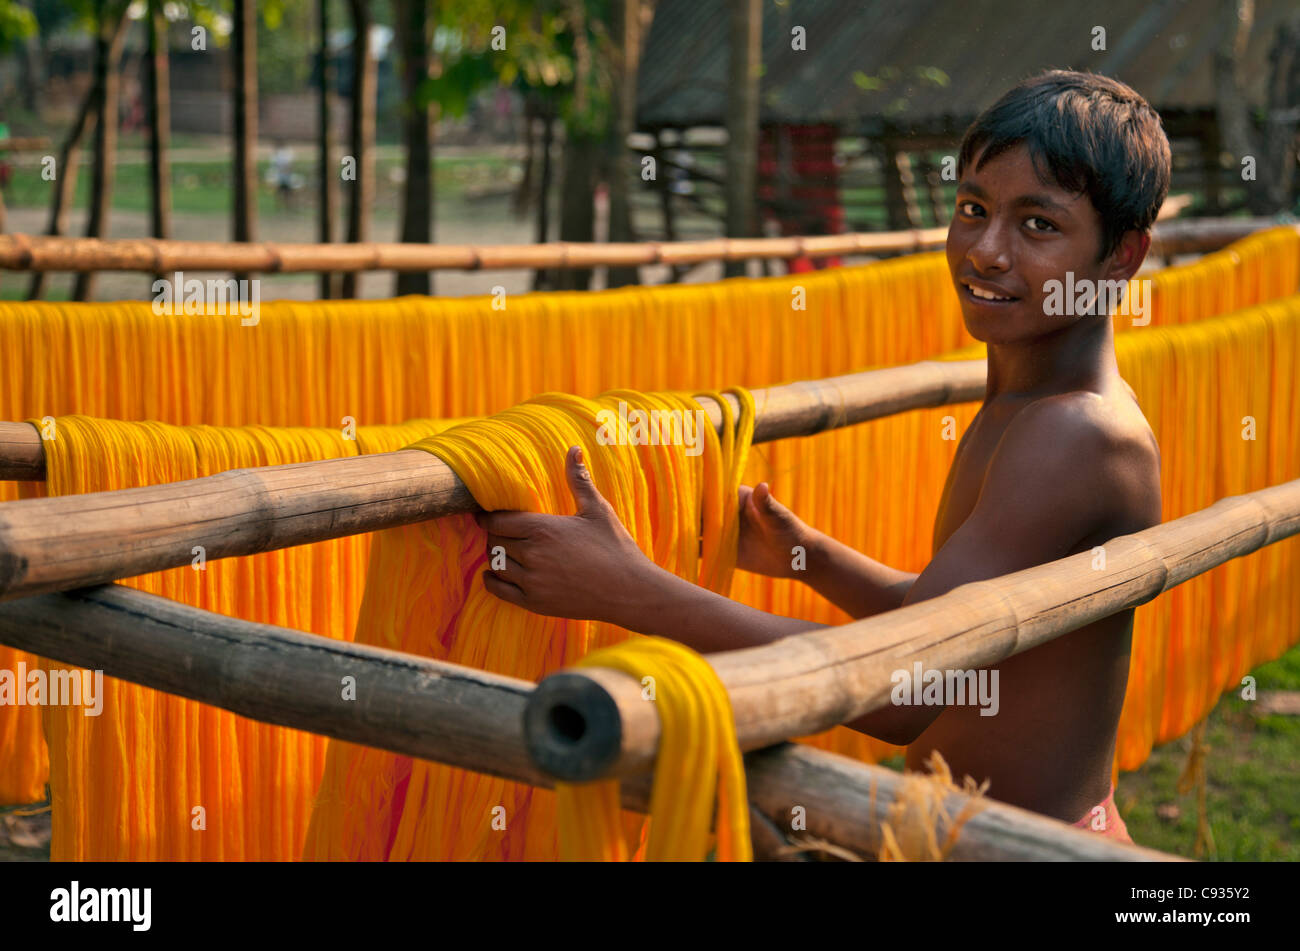 At Santipur village on the banks of the Hooghly River, a  boy gathers skeins of cotton after dyeing and drying them - Stock Image